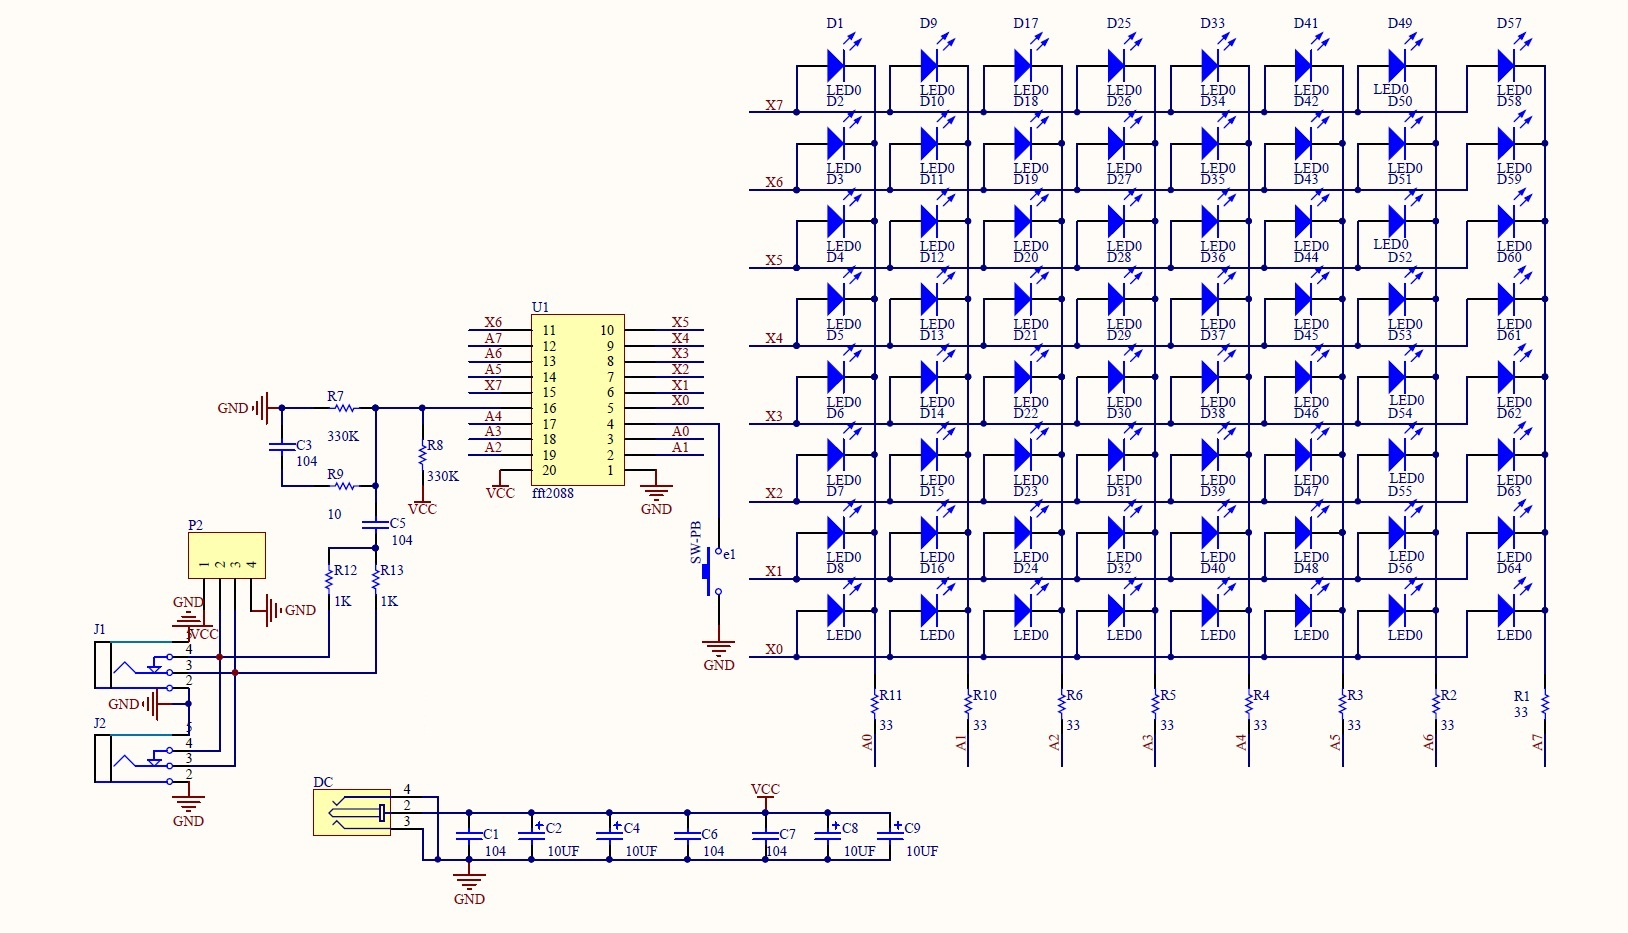 Index Of Download Switch Left 41k Jpg And Sheet 4 Rotary Wiring Diagram 8x8 Schematic